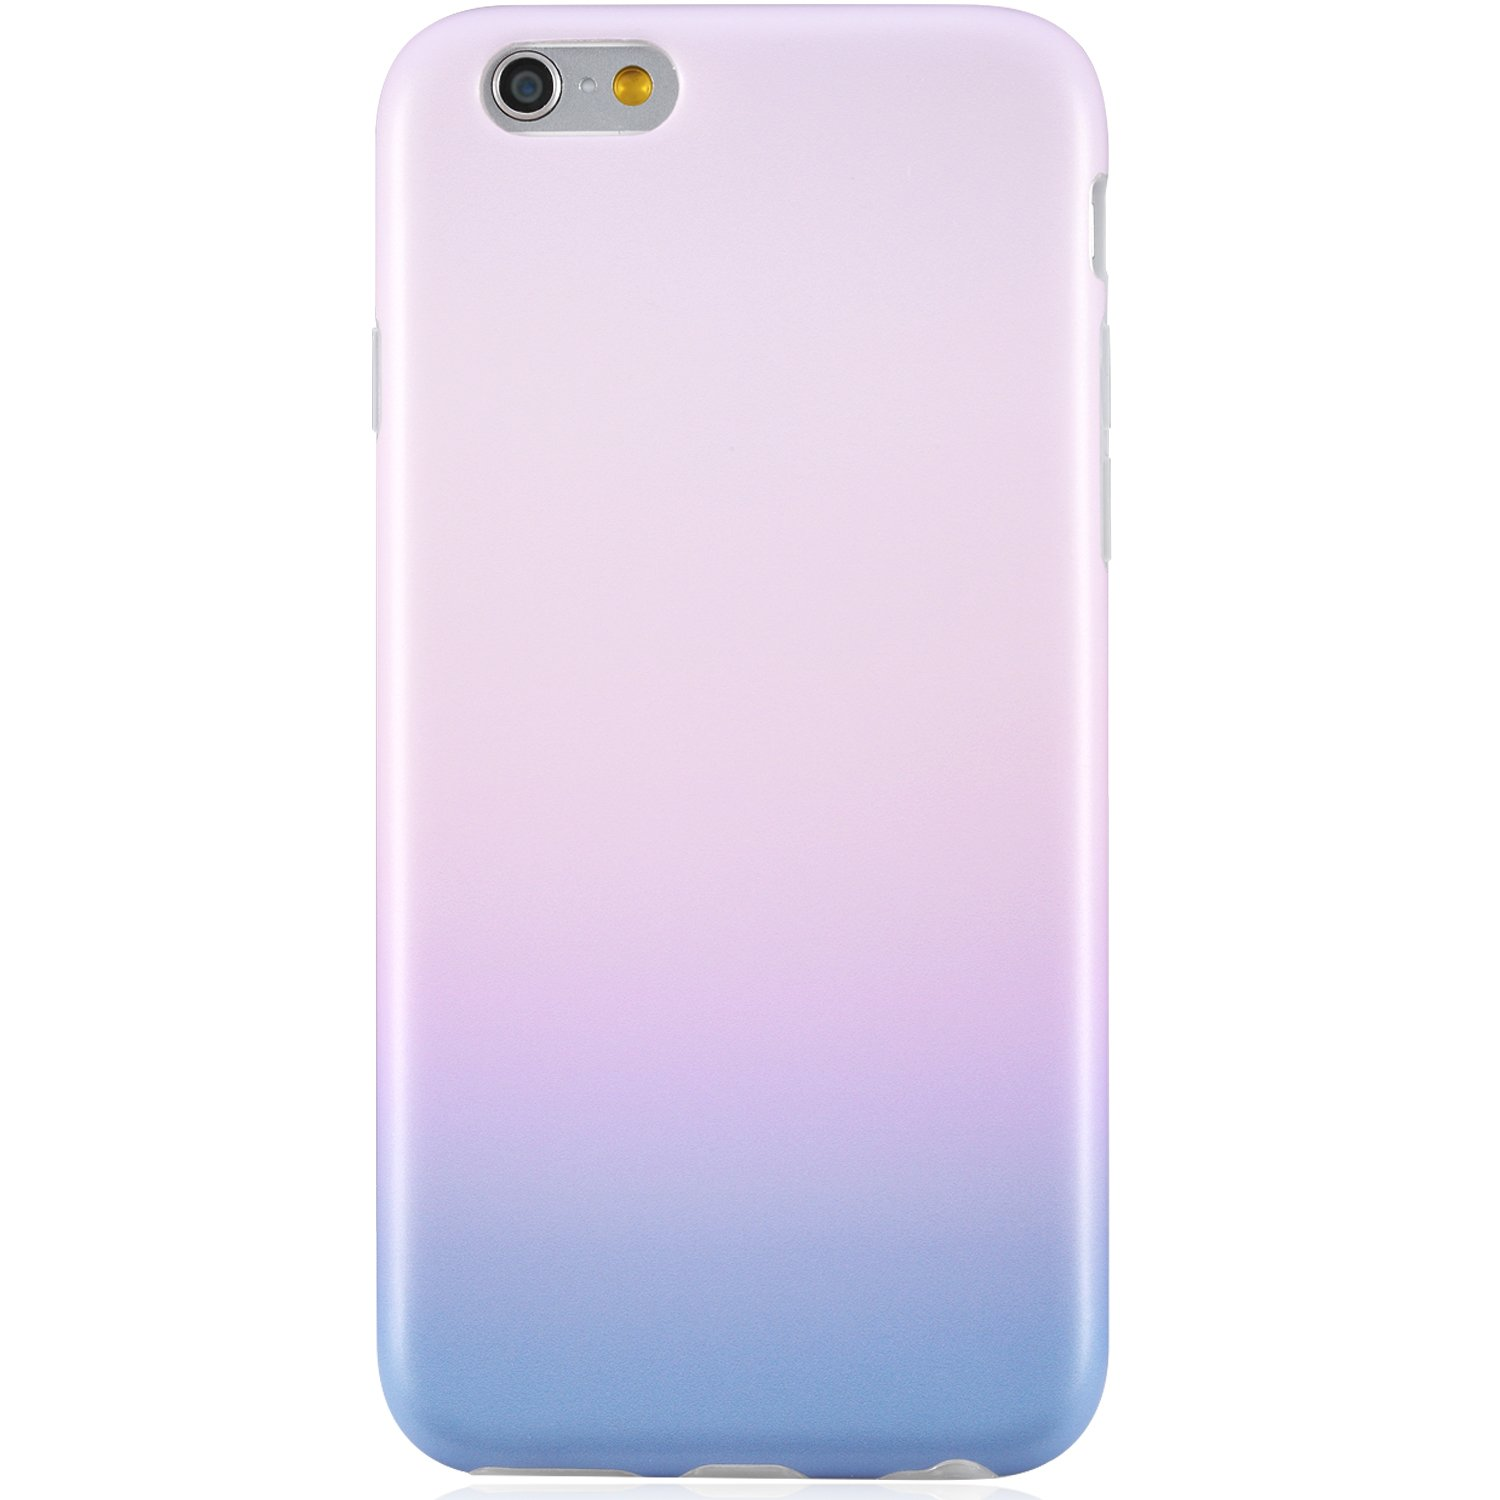 Amazon.com: VIVIBIN - Funda para iPhone 6, iPhone 6s, bonita ...